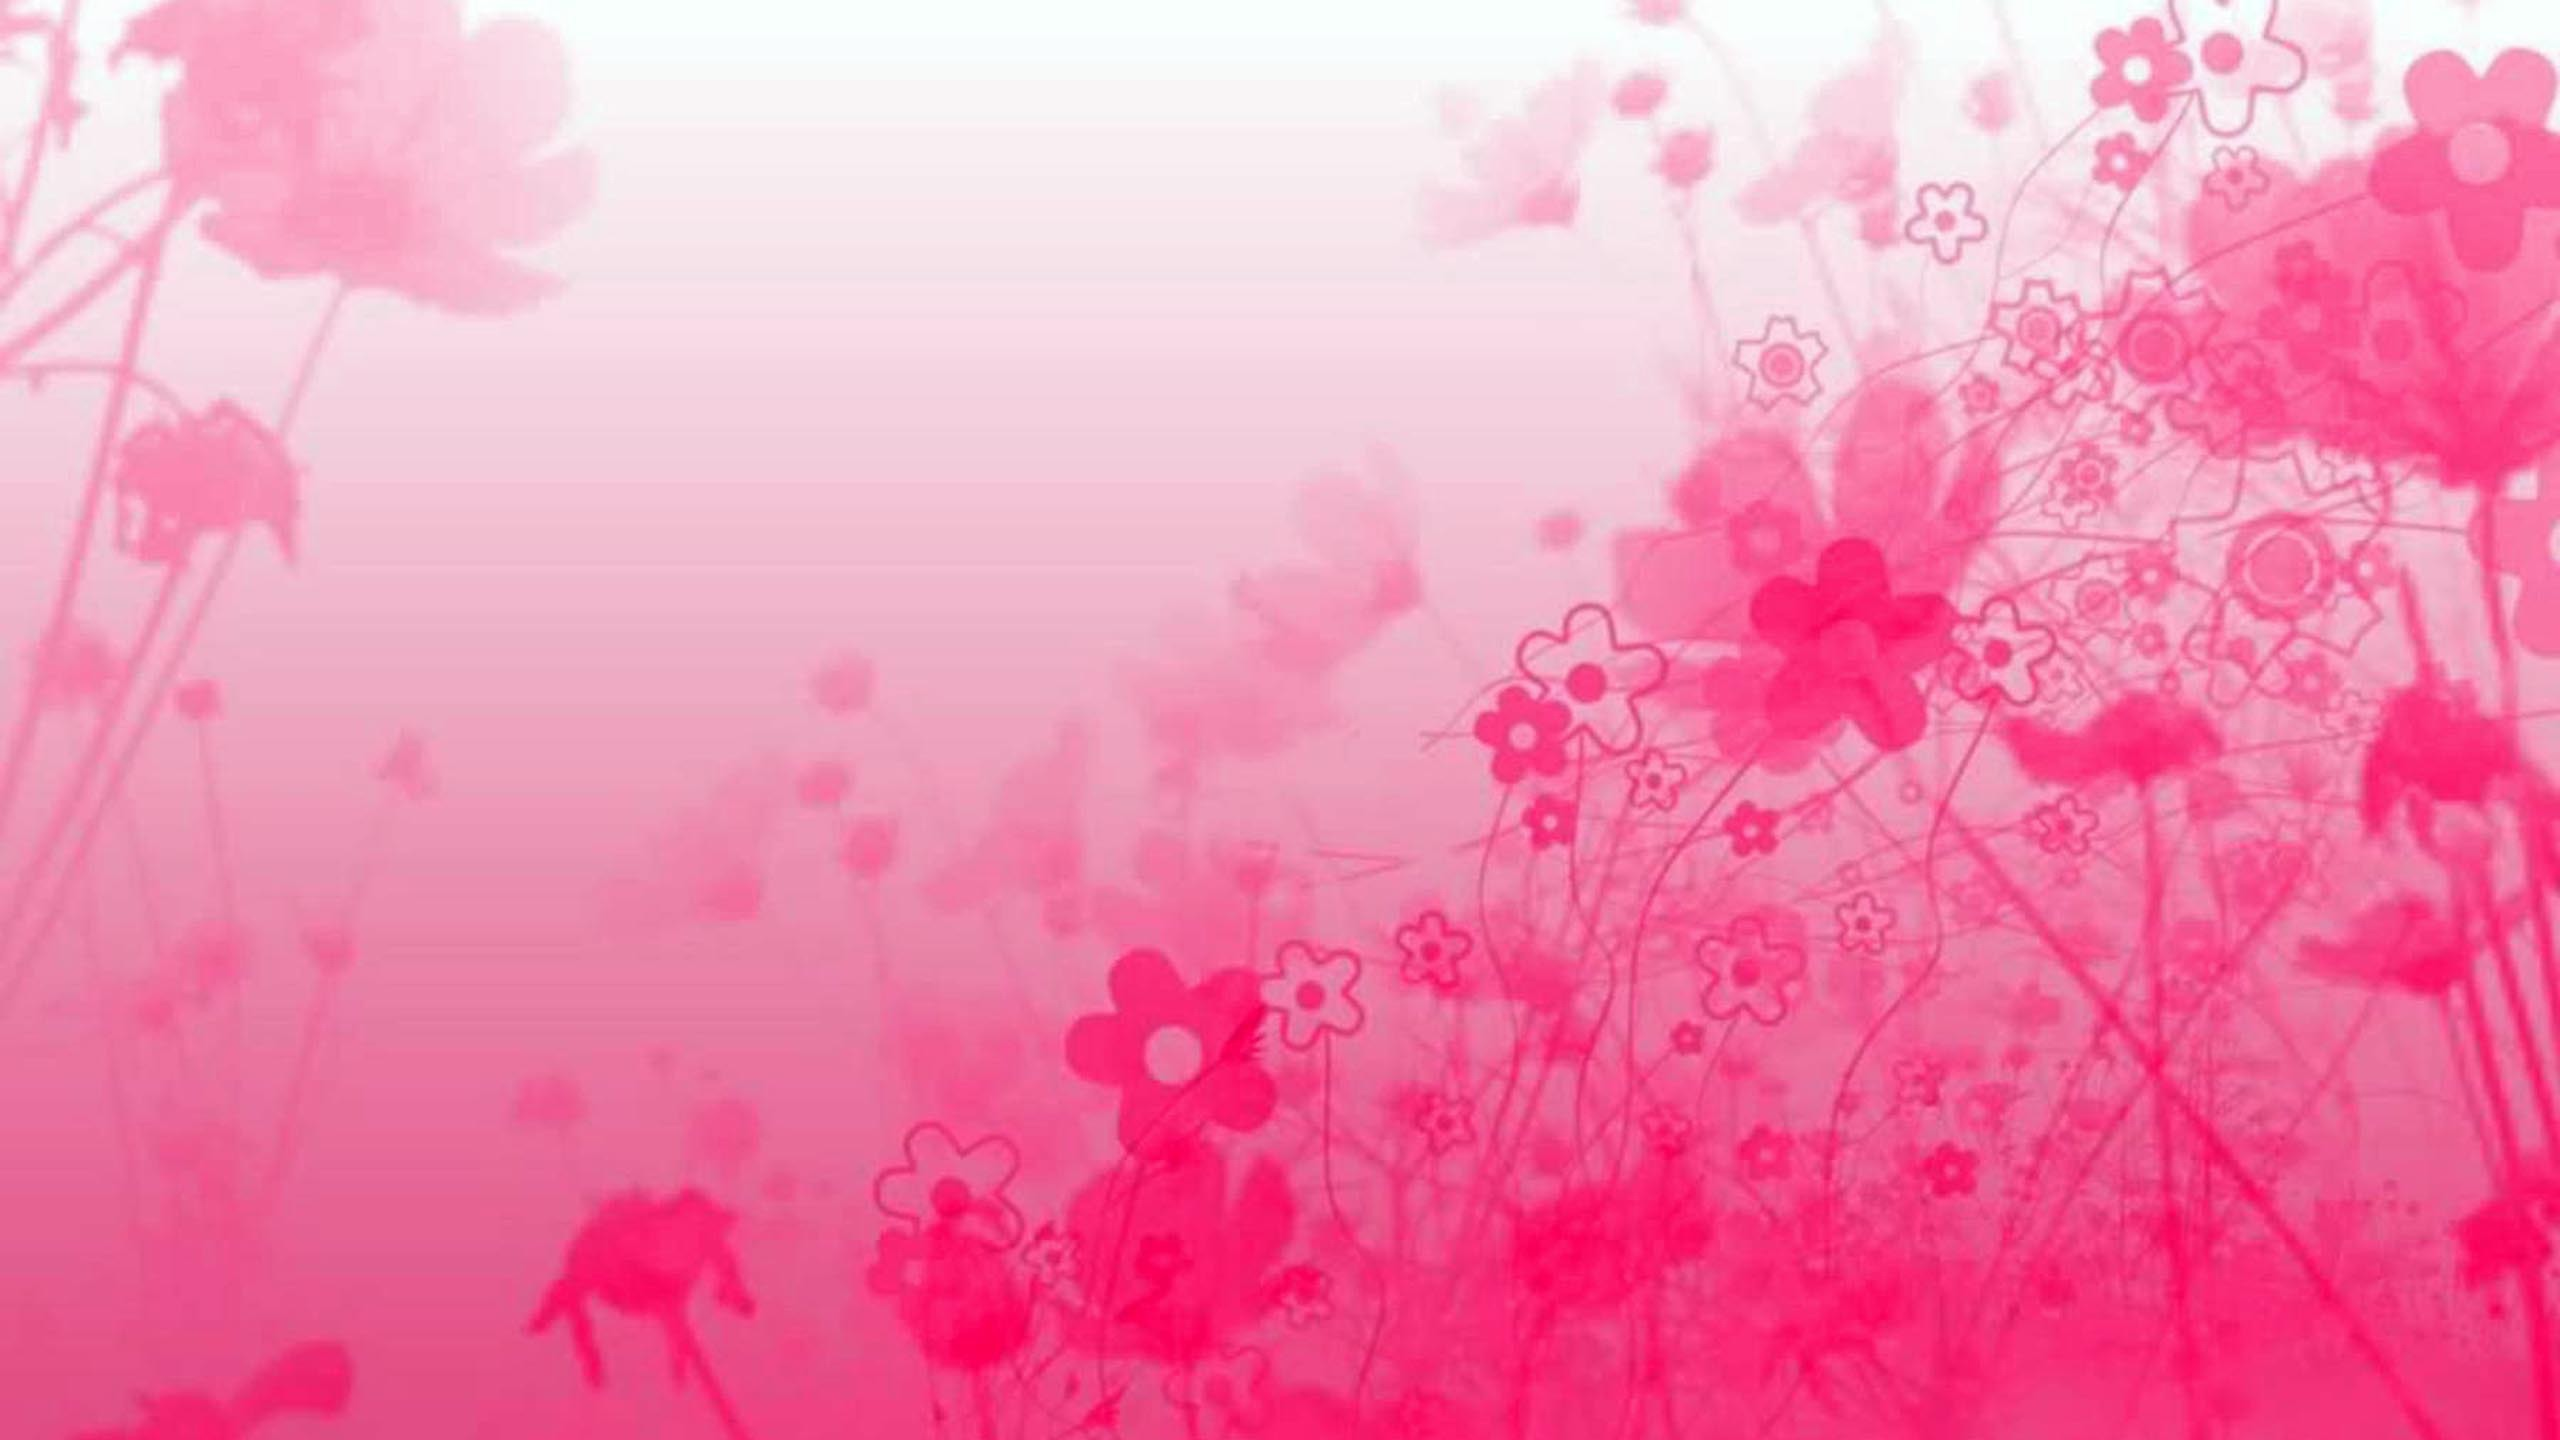 pink abstract wallpapers images photos pictures backgrounds